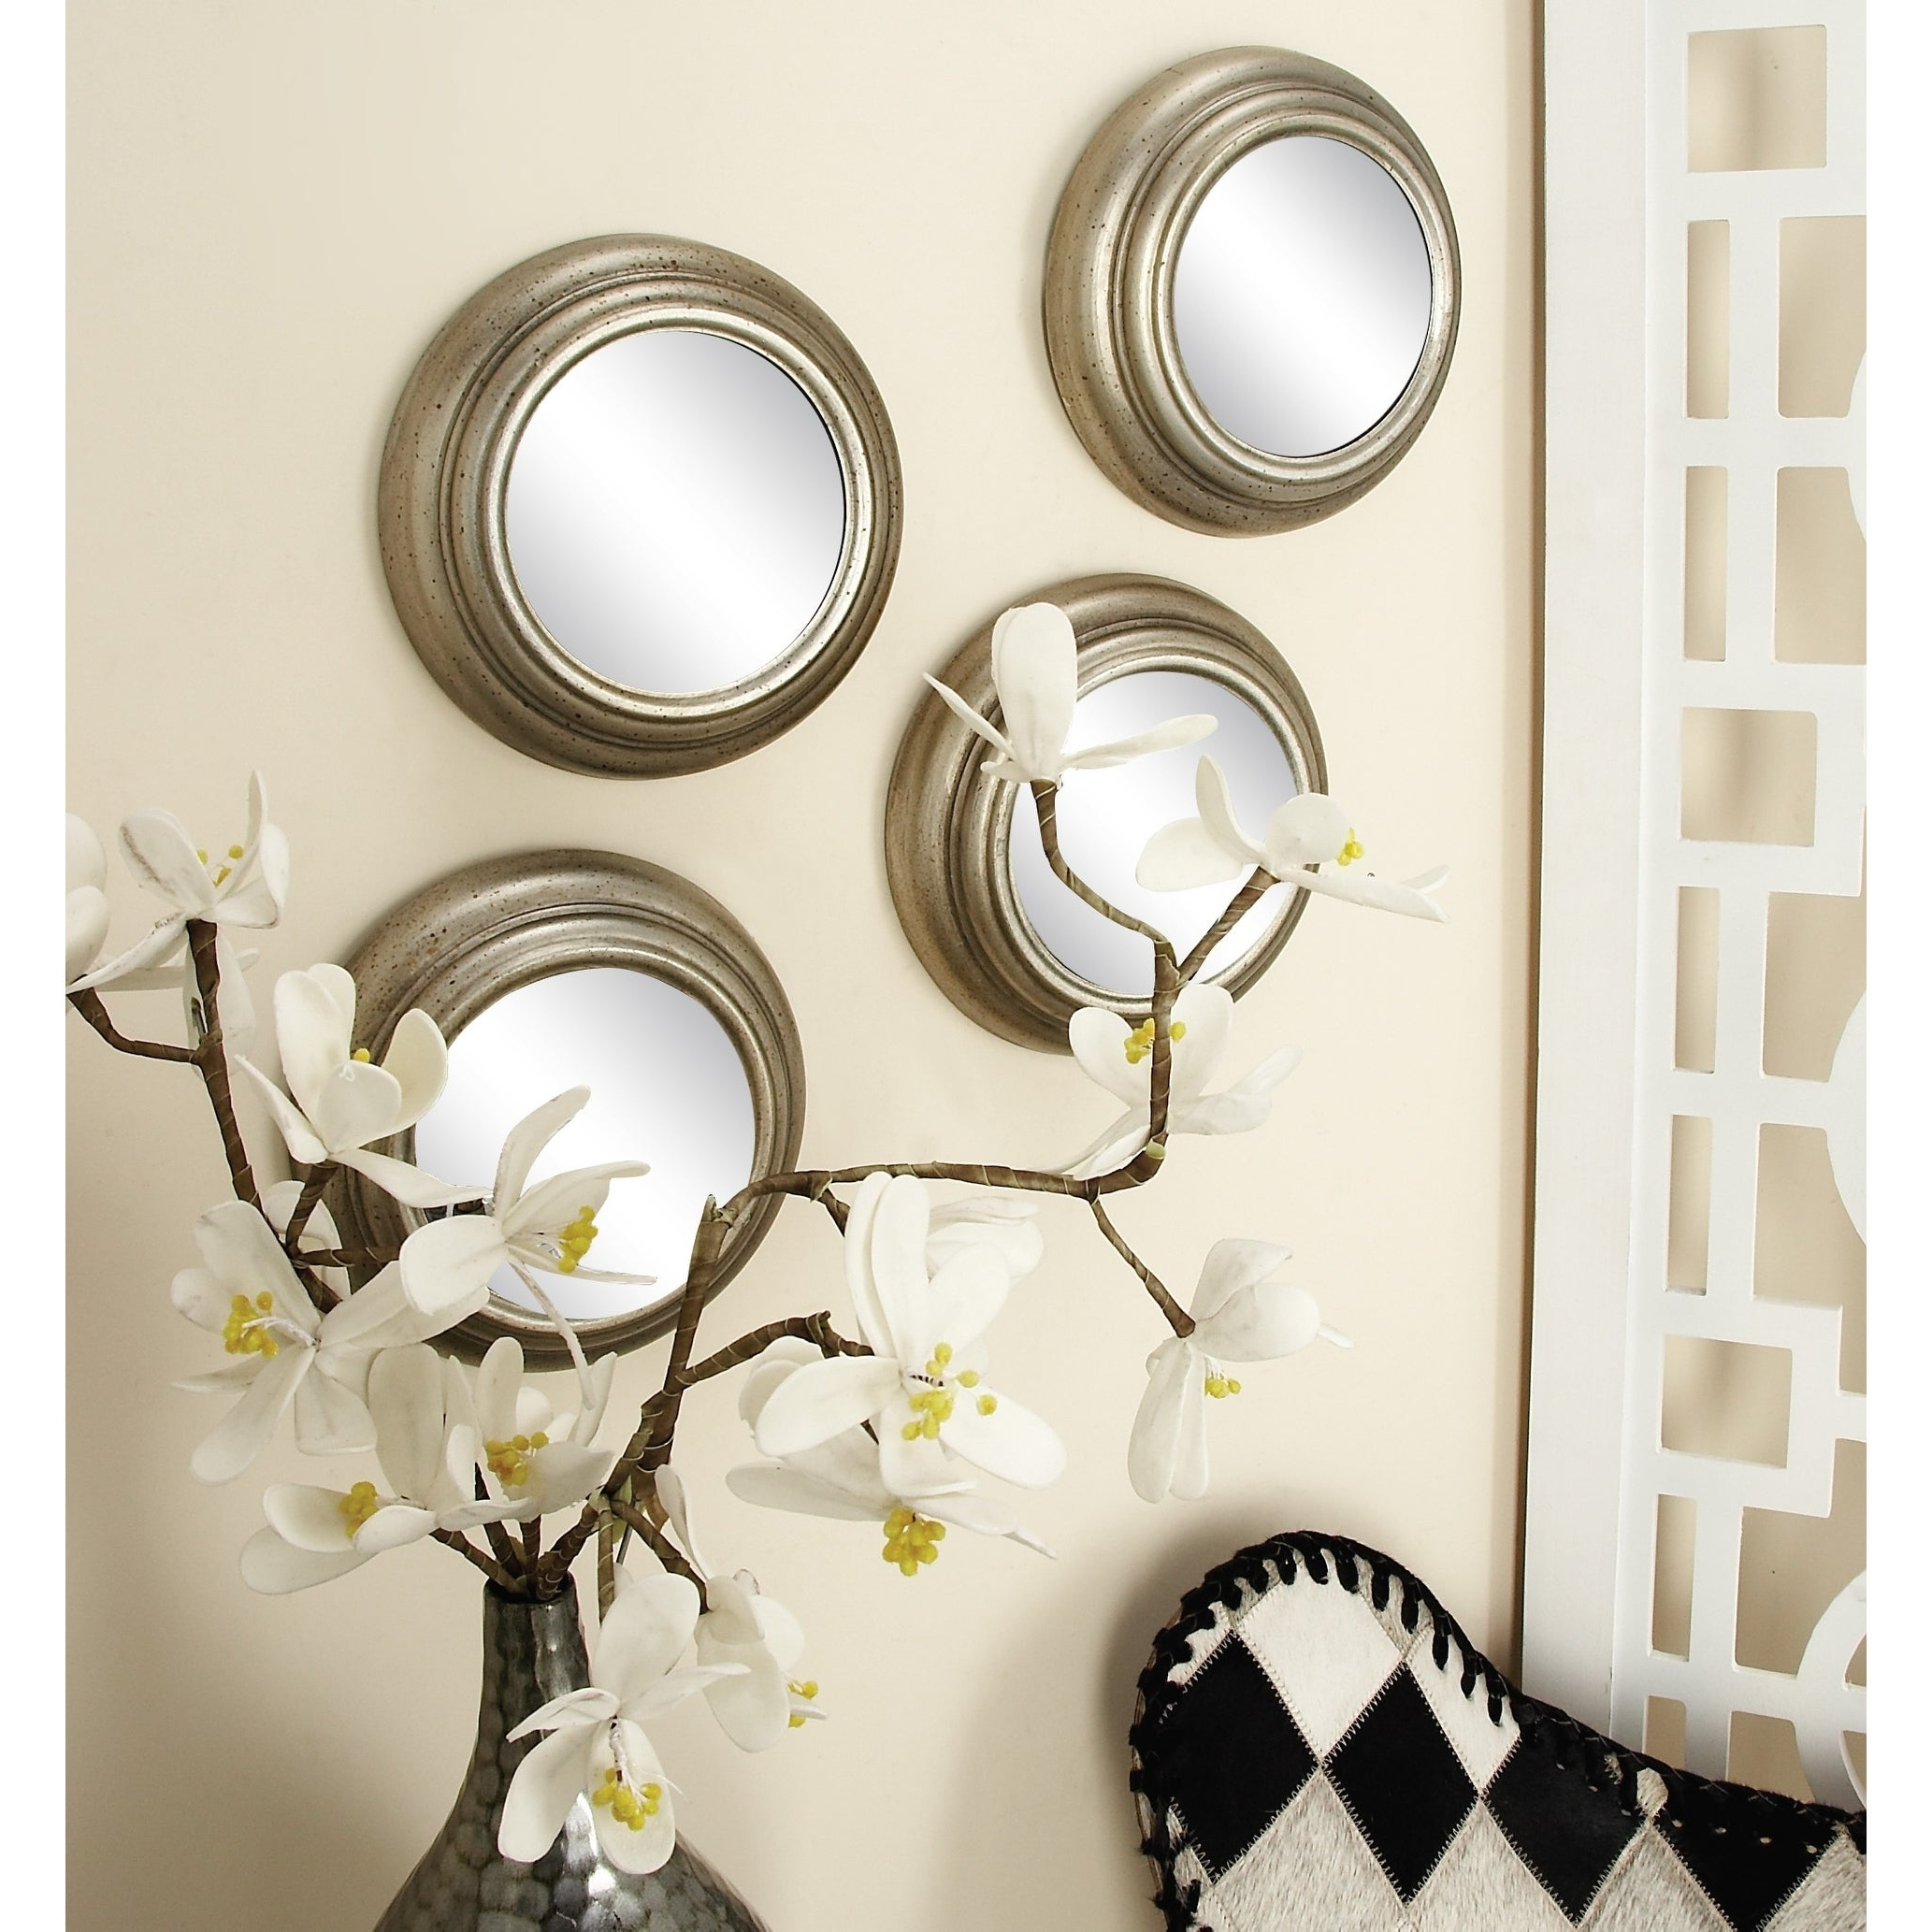 Popular Round Wall Mirror Sets Pertaining To Set Of 12 Contemporary Round Decorative Wall Mirrorsstudio 350 – Silver (View 8 of 20)